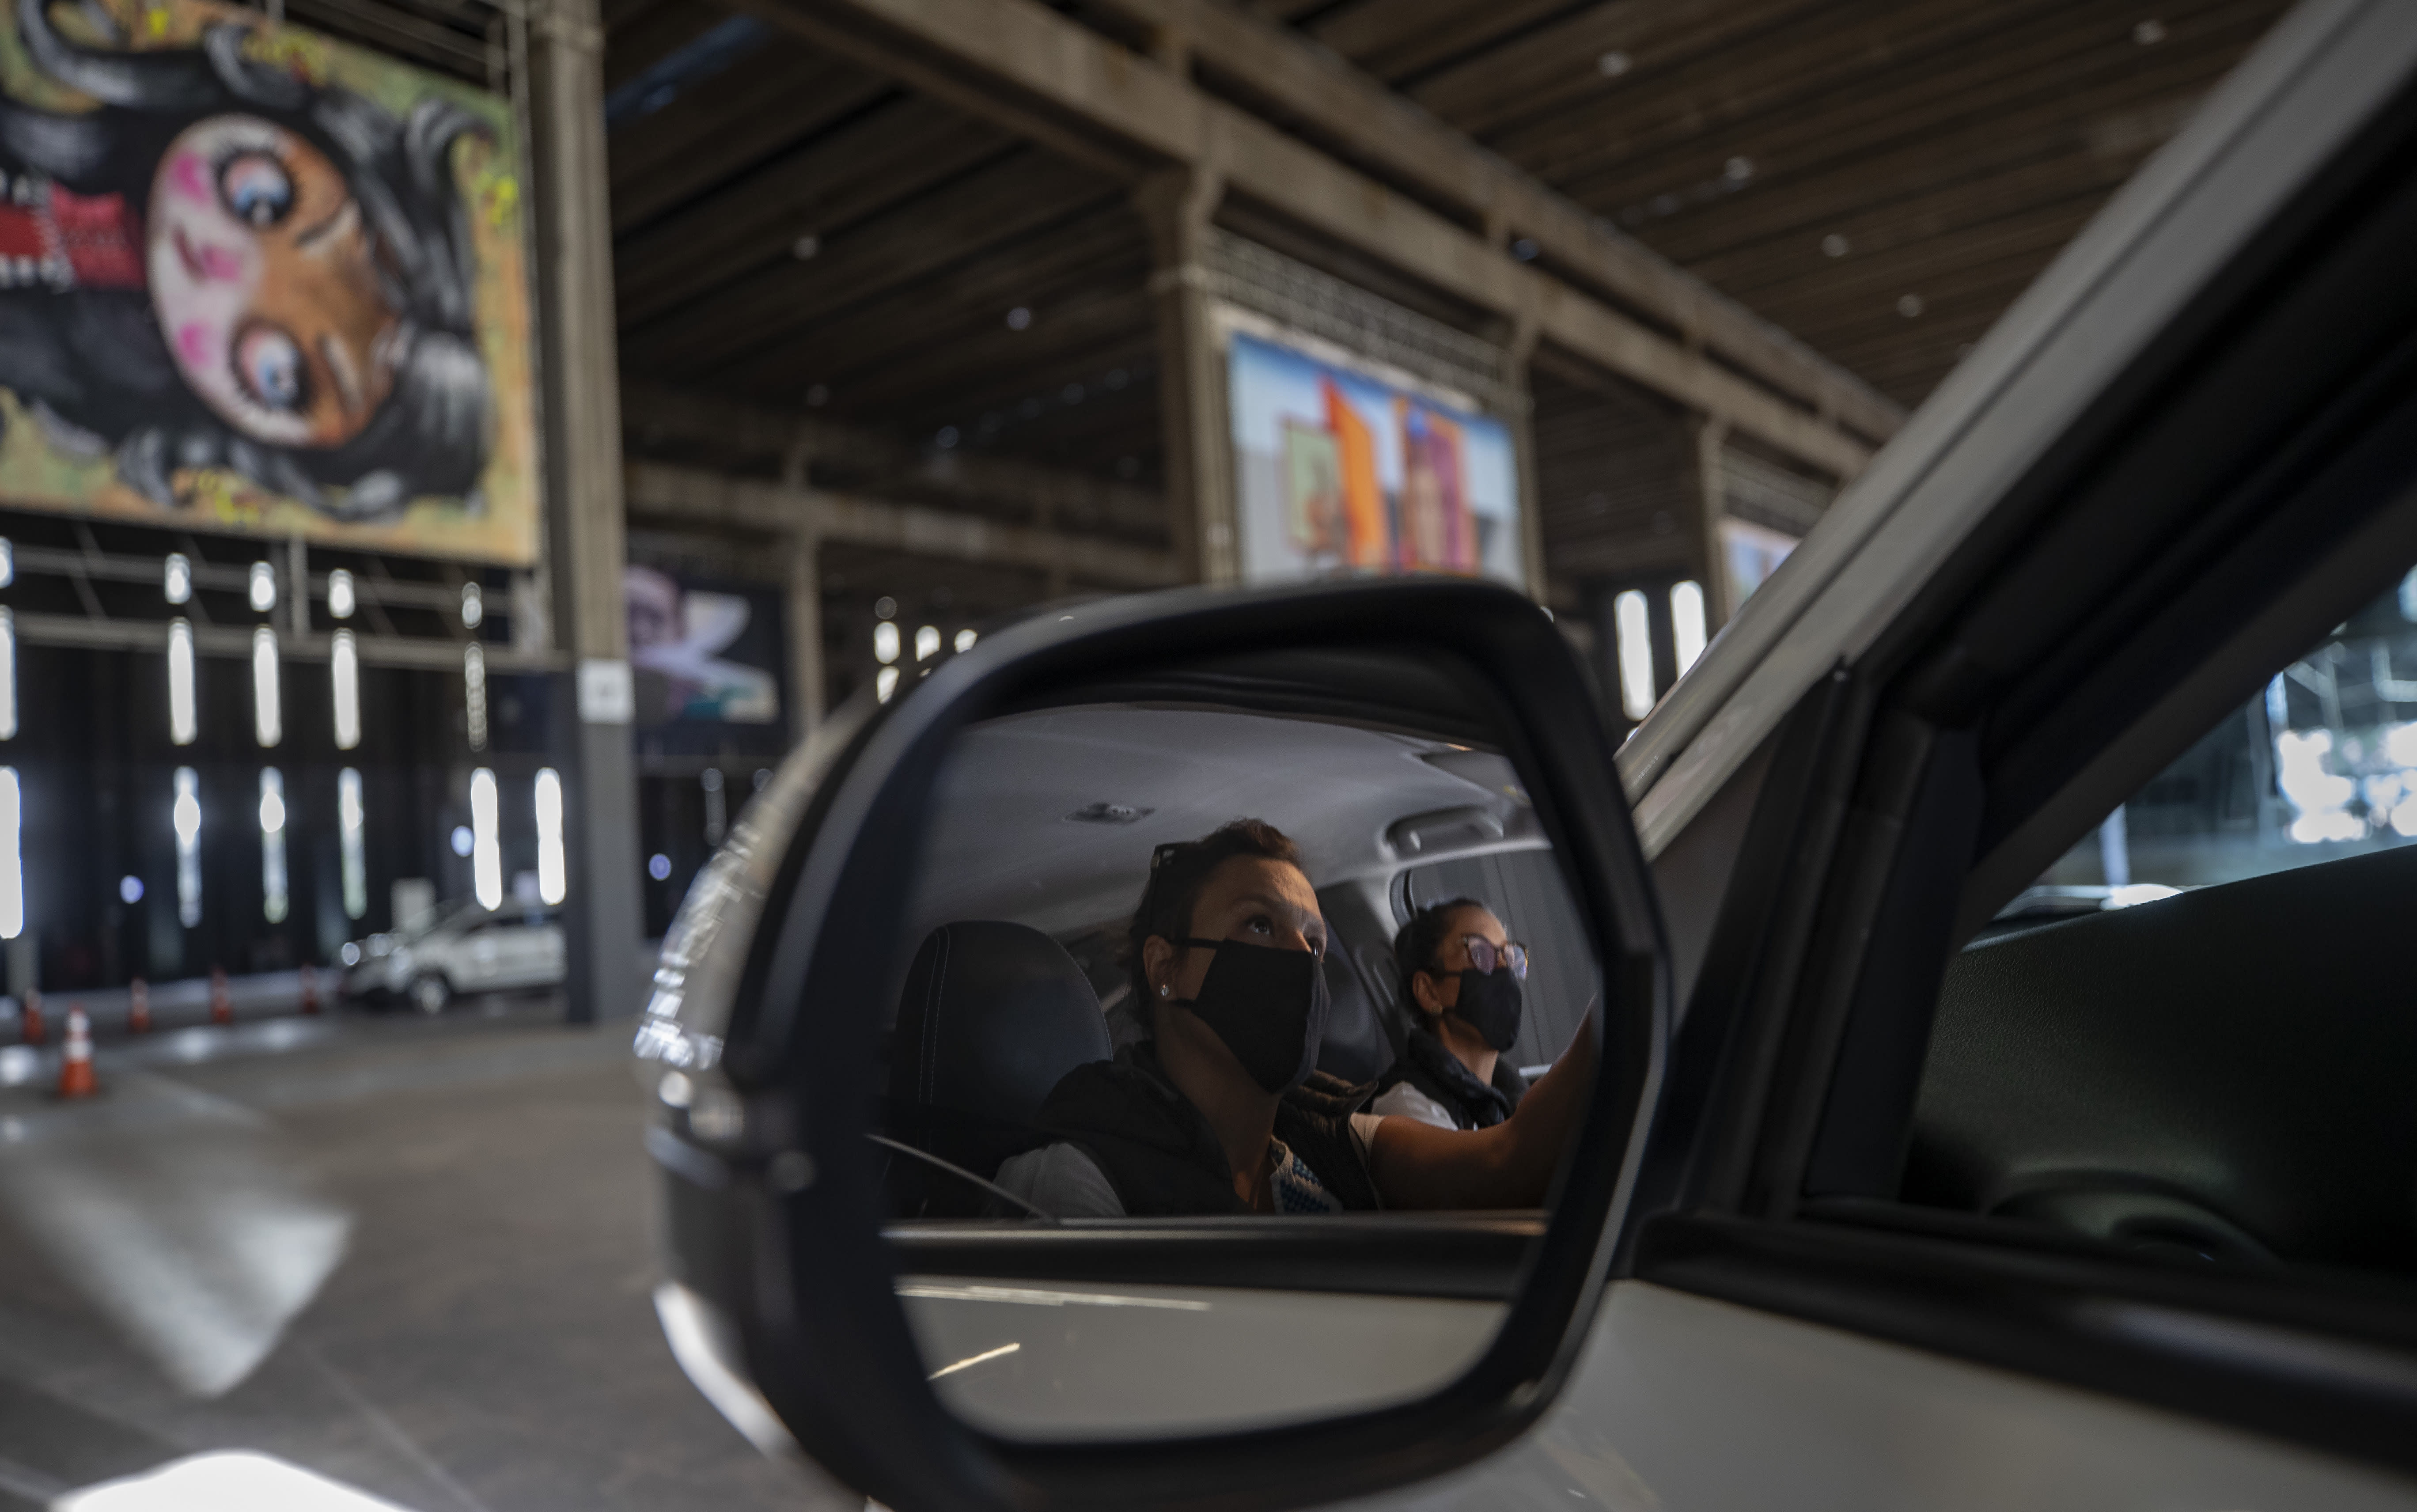 Visitors take in an art exhibit from inside a car as they drive through a warehouse displaying paintings and photos in Sao Paulo, Brazil, Friday, July 24, 2020, amid the new coronavirus pandemic. Galleries, cinemas, theaters and museums are closed due to the restrictive measures to avoid the spread of COVID-19, but a group of artists and a curator found a way to overcome the restrictions to share their art with the residents of Brazil's largest city. (AP Photo/Andre Penner)